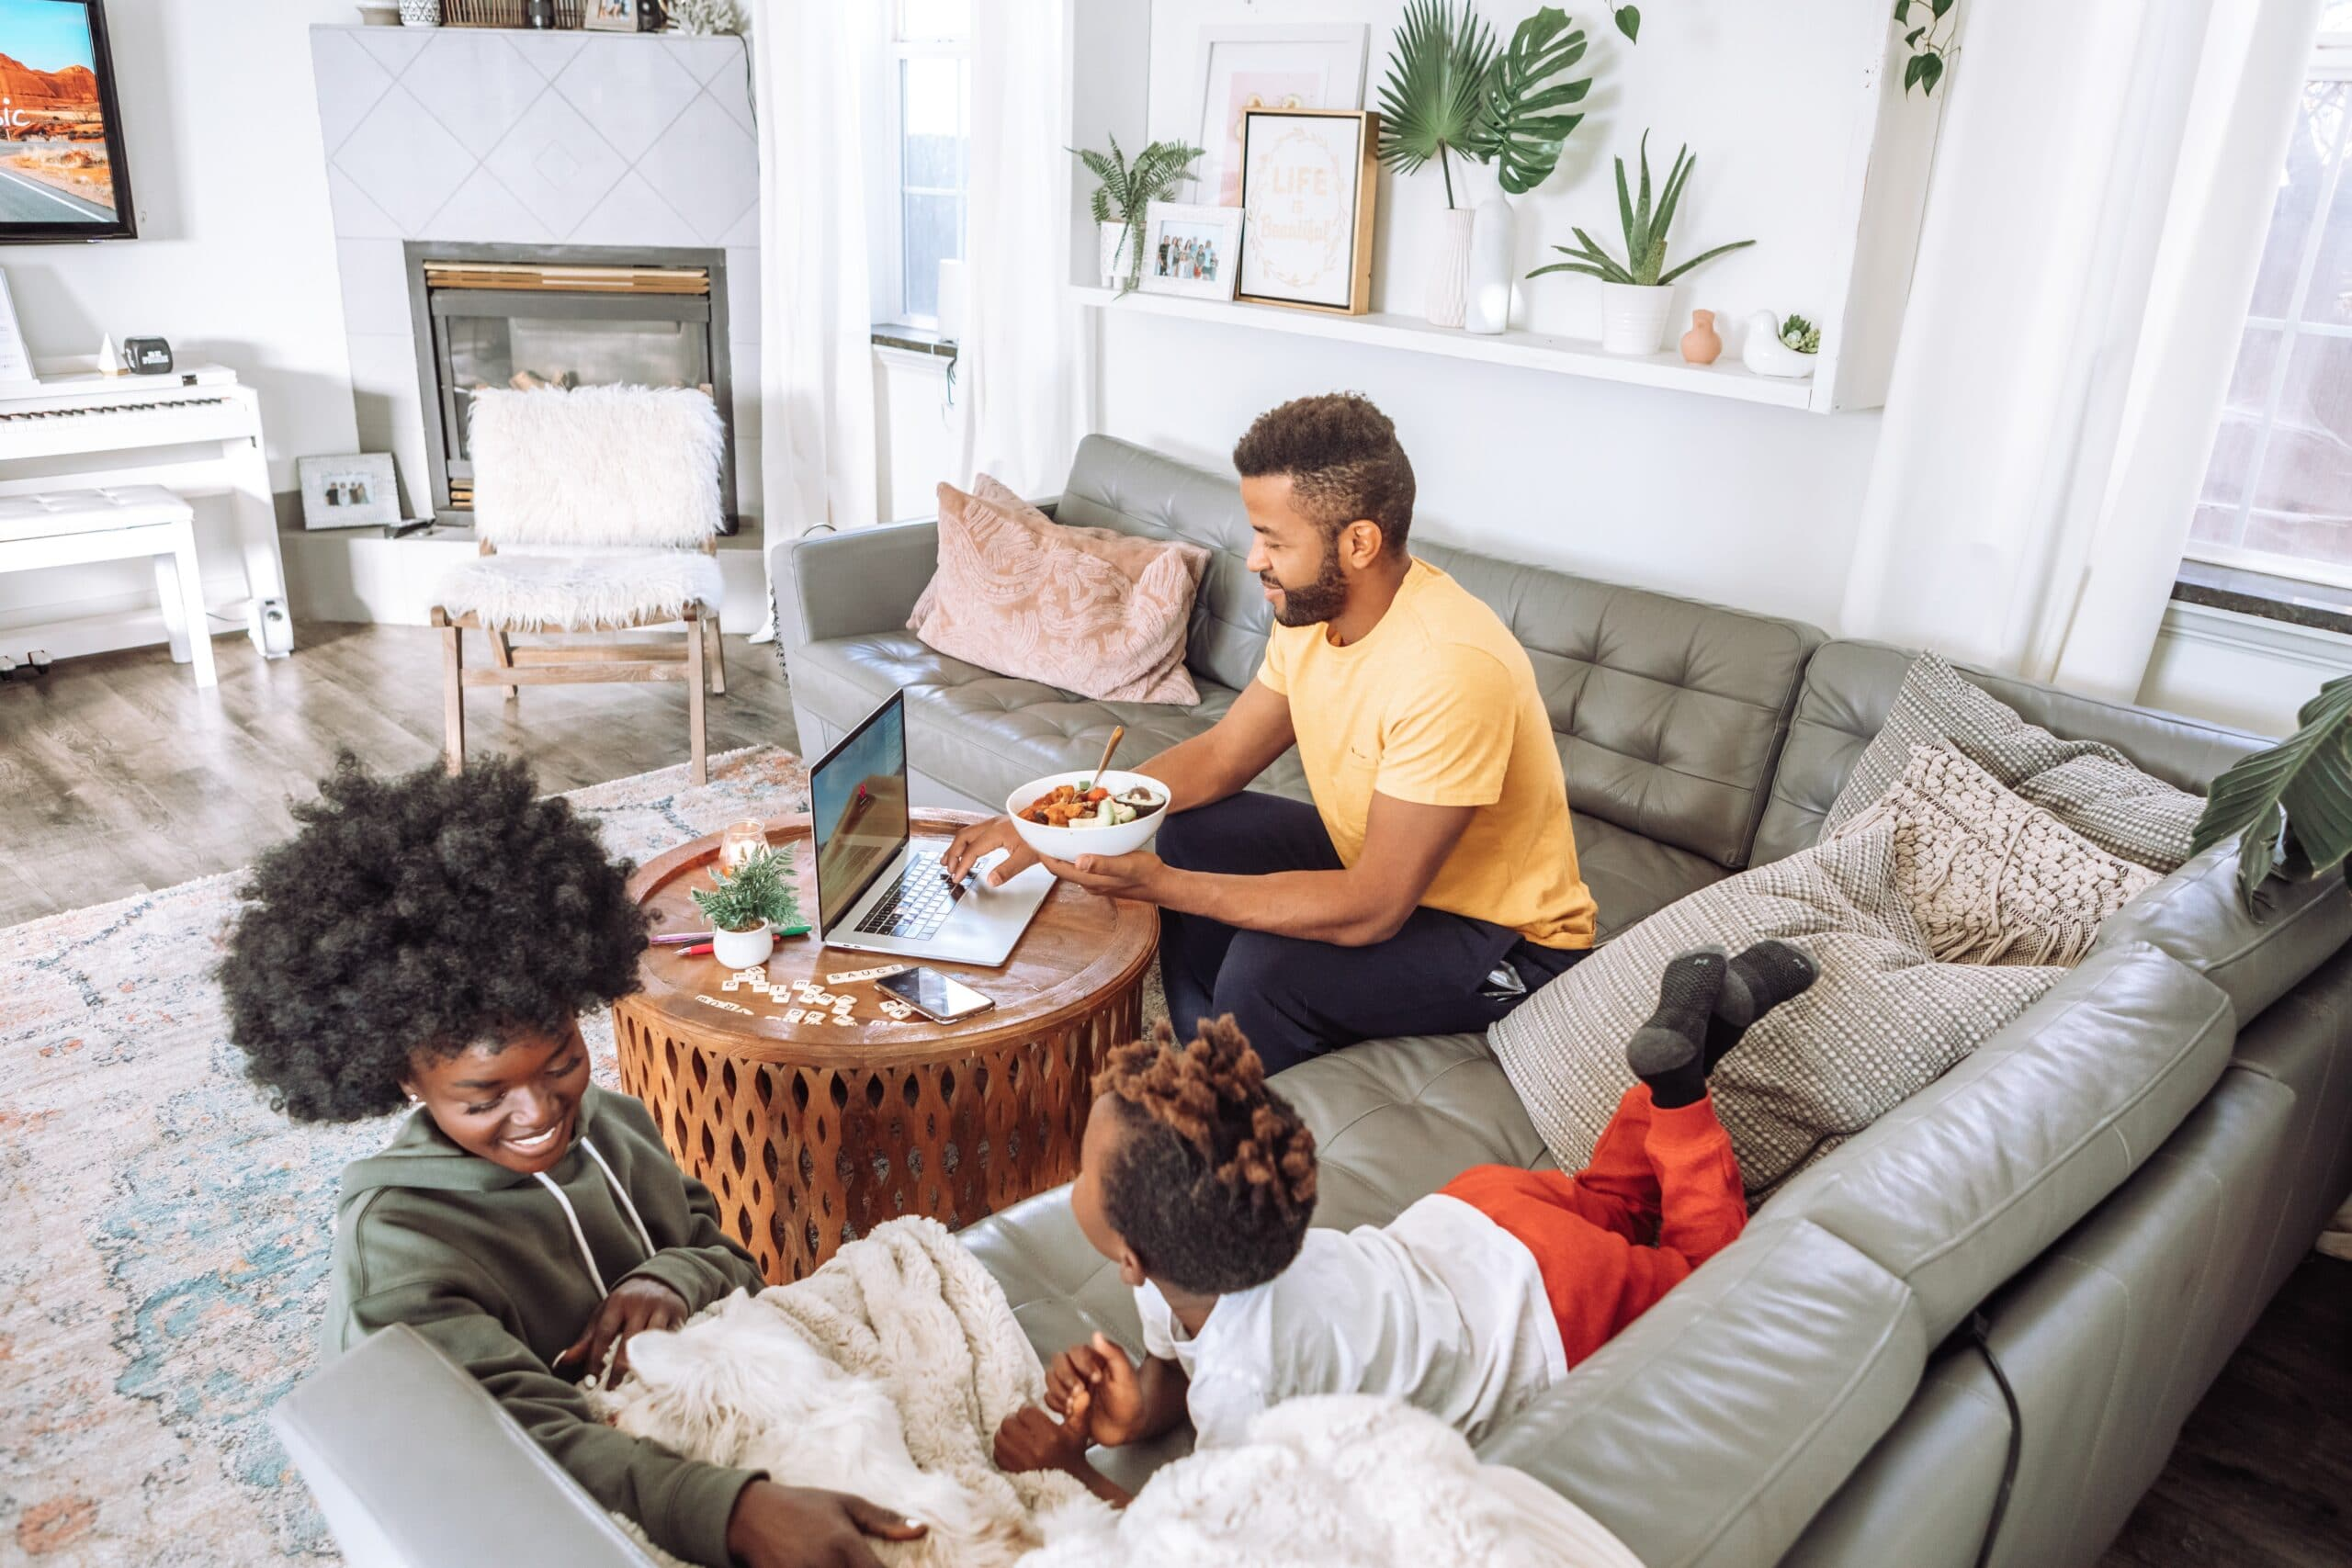 A Man Working In A Laptop Sitting At A Living Room With A Smiling Woman And A Little Boy